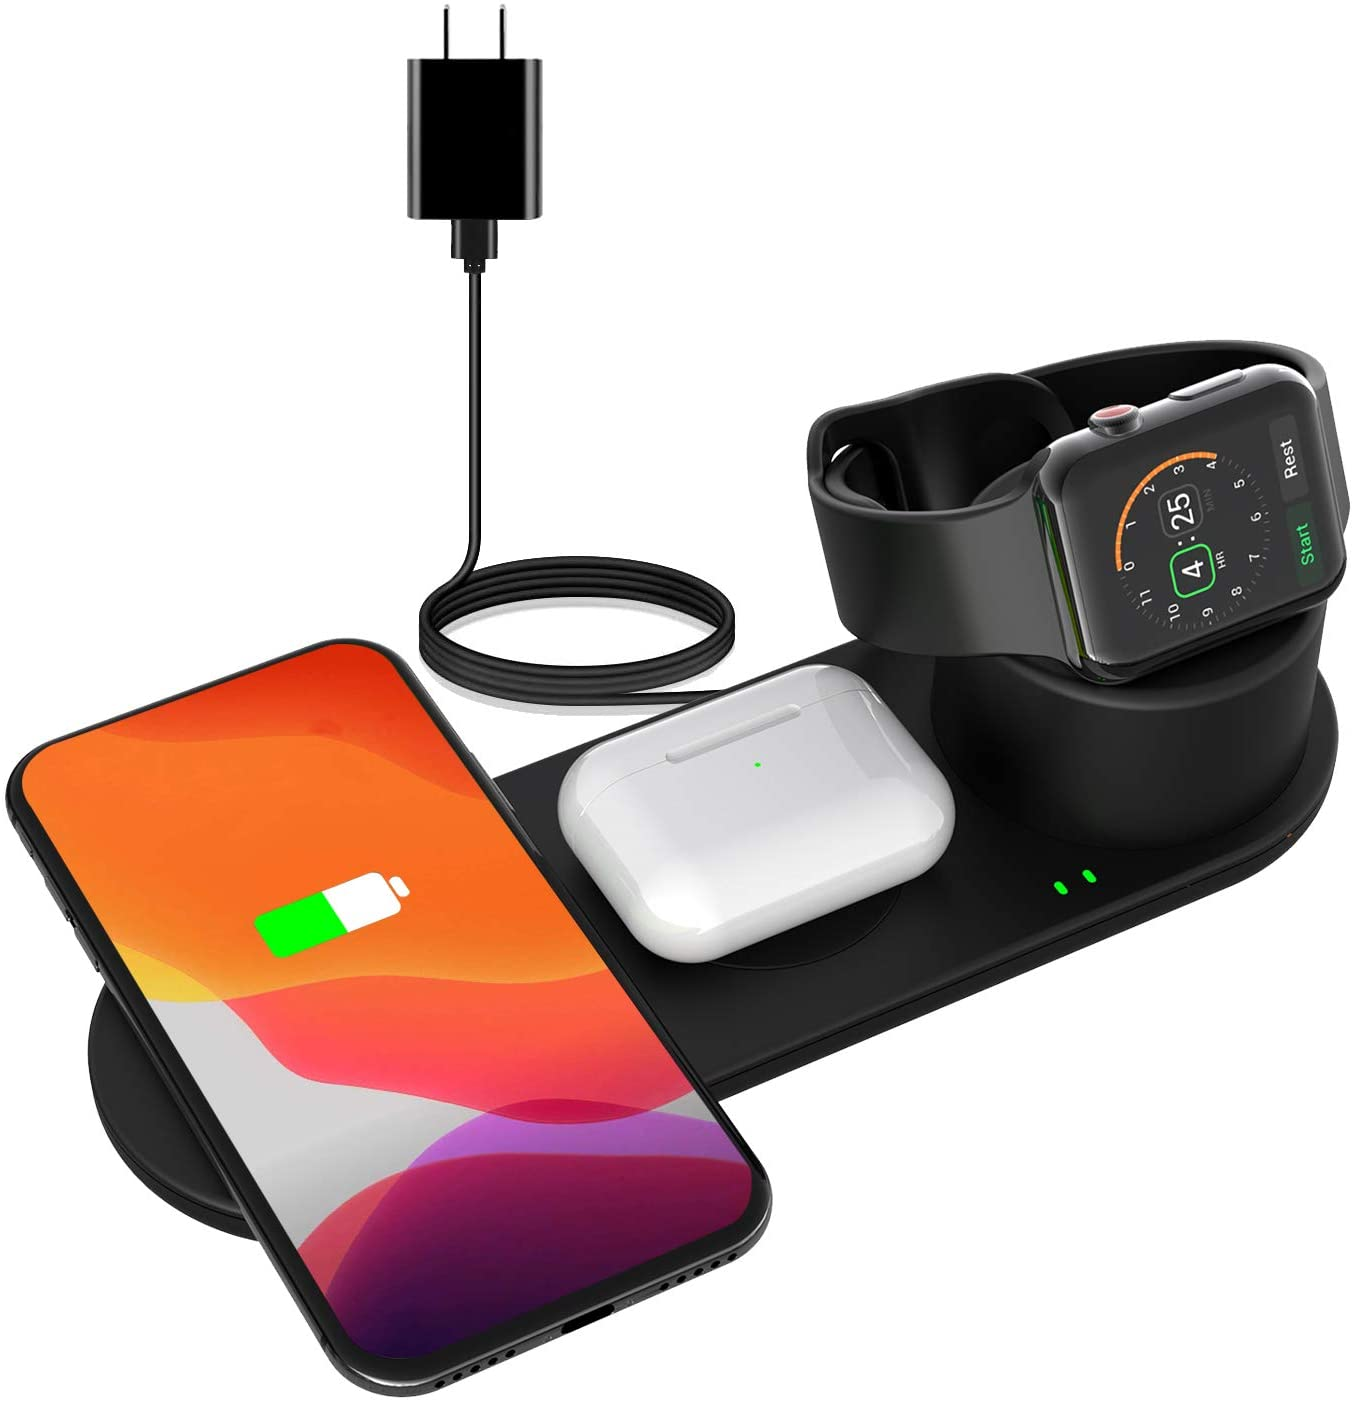 EloBeth 3 in 1 Qi Certified Wireless Charger Station Compatible with iPhone SE/11 pro/Xs/XR/X/8 and Airpower Wireless Charging Apple Watch Series 6 5 4 Stand Android Phone Multiple Devices Charger